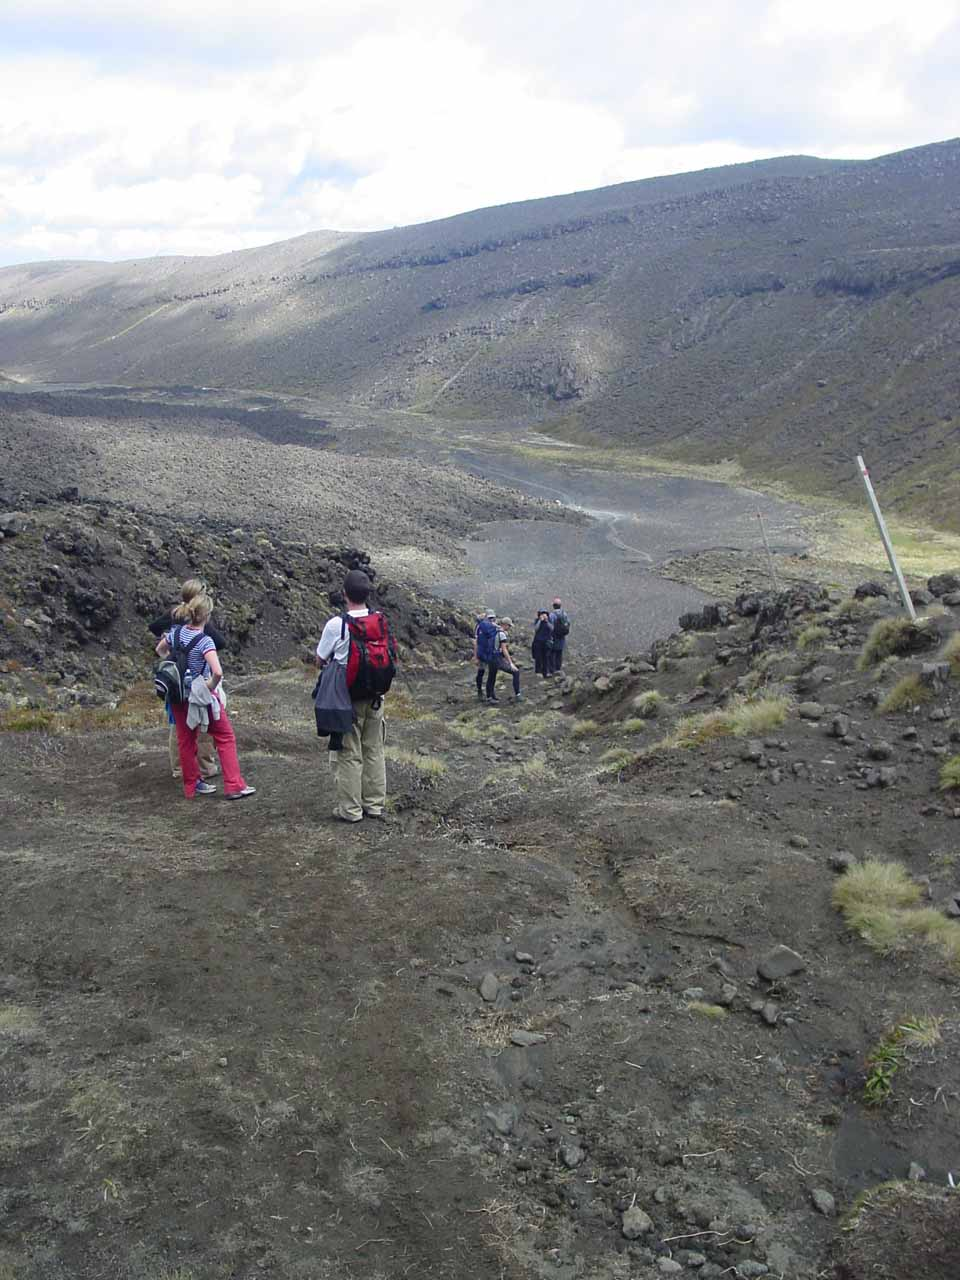 Looking back down at other people making the ascent on the Tongariro Crossing